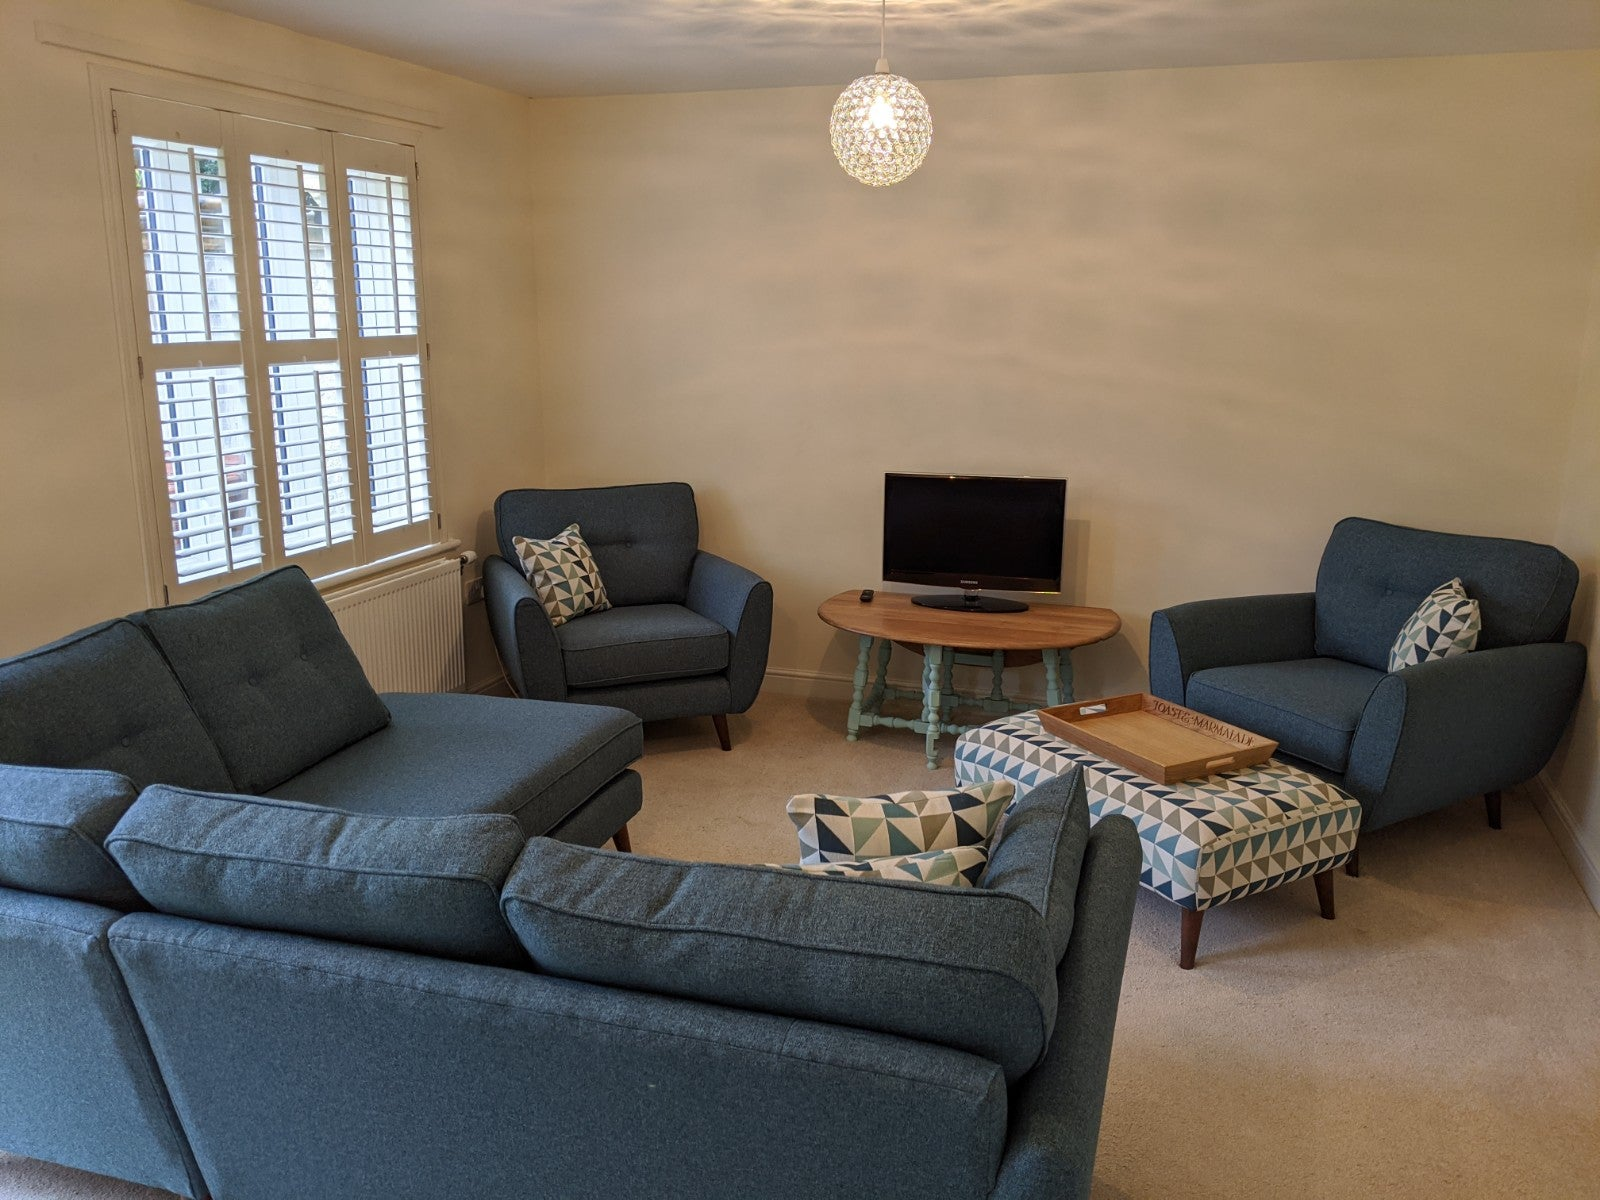 1 Coneygar Fields, Steeple Aston - Living room area